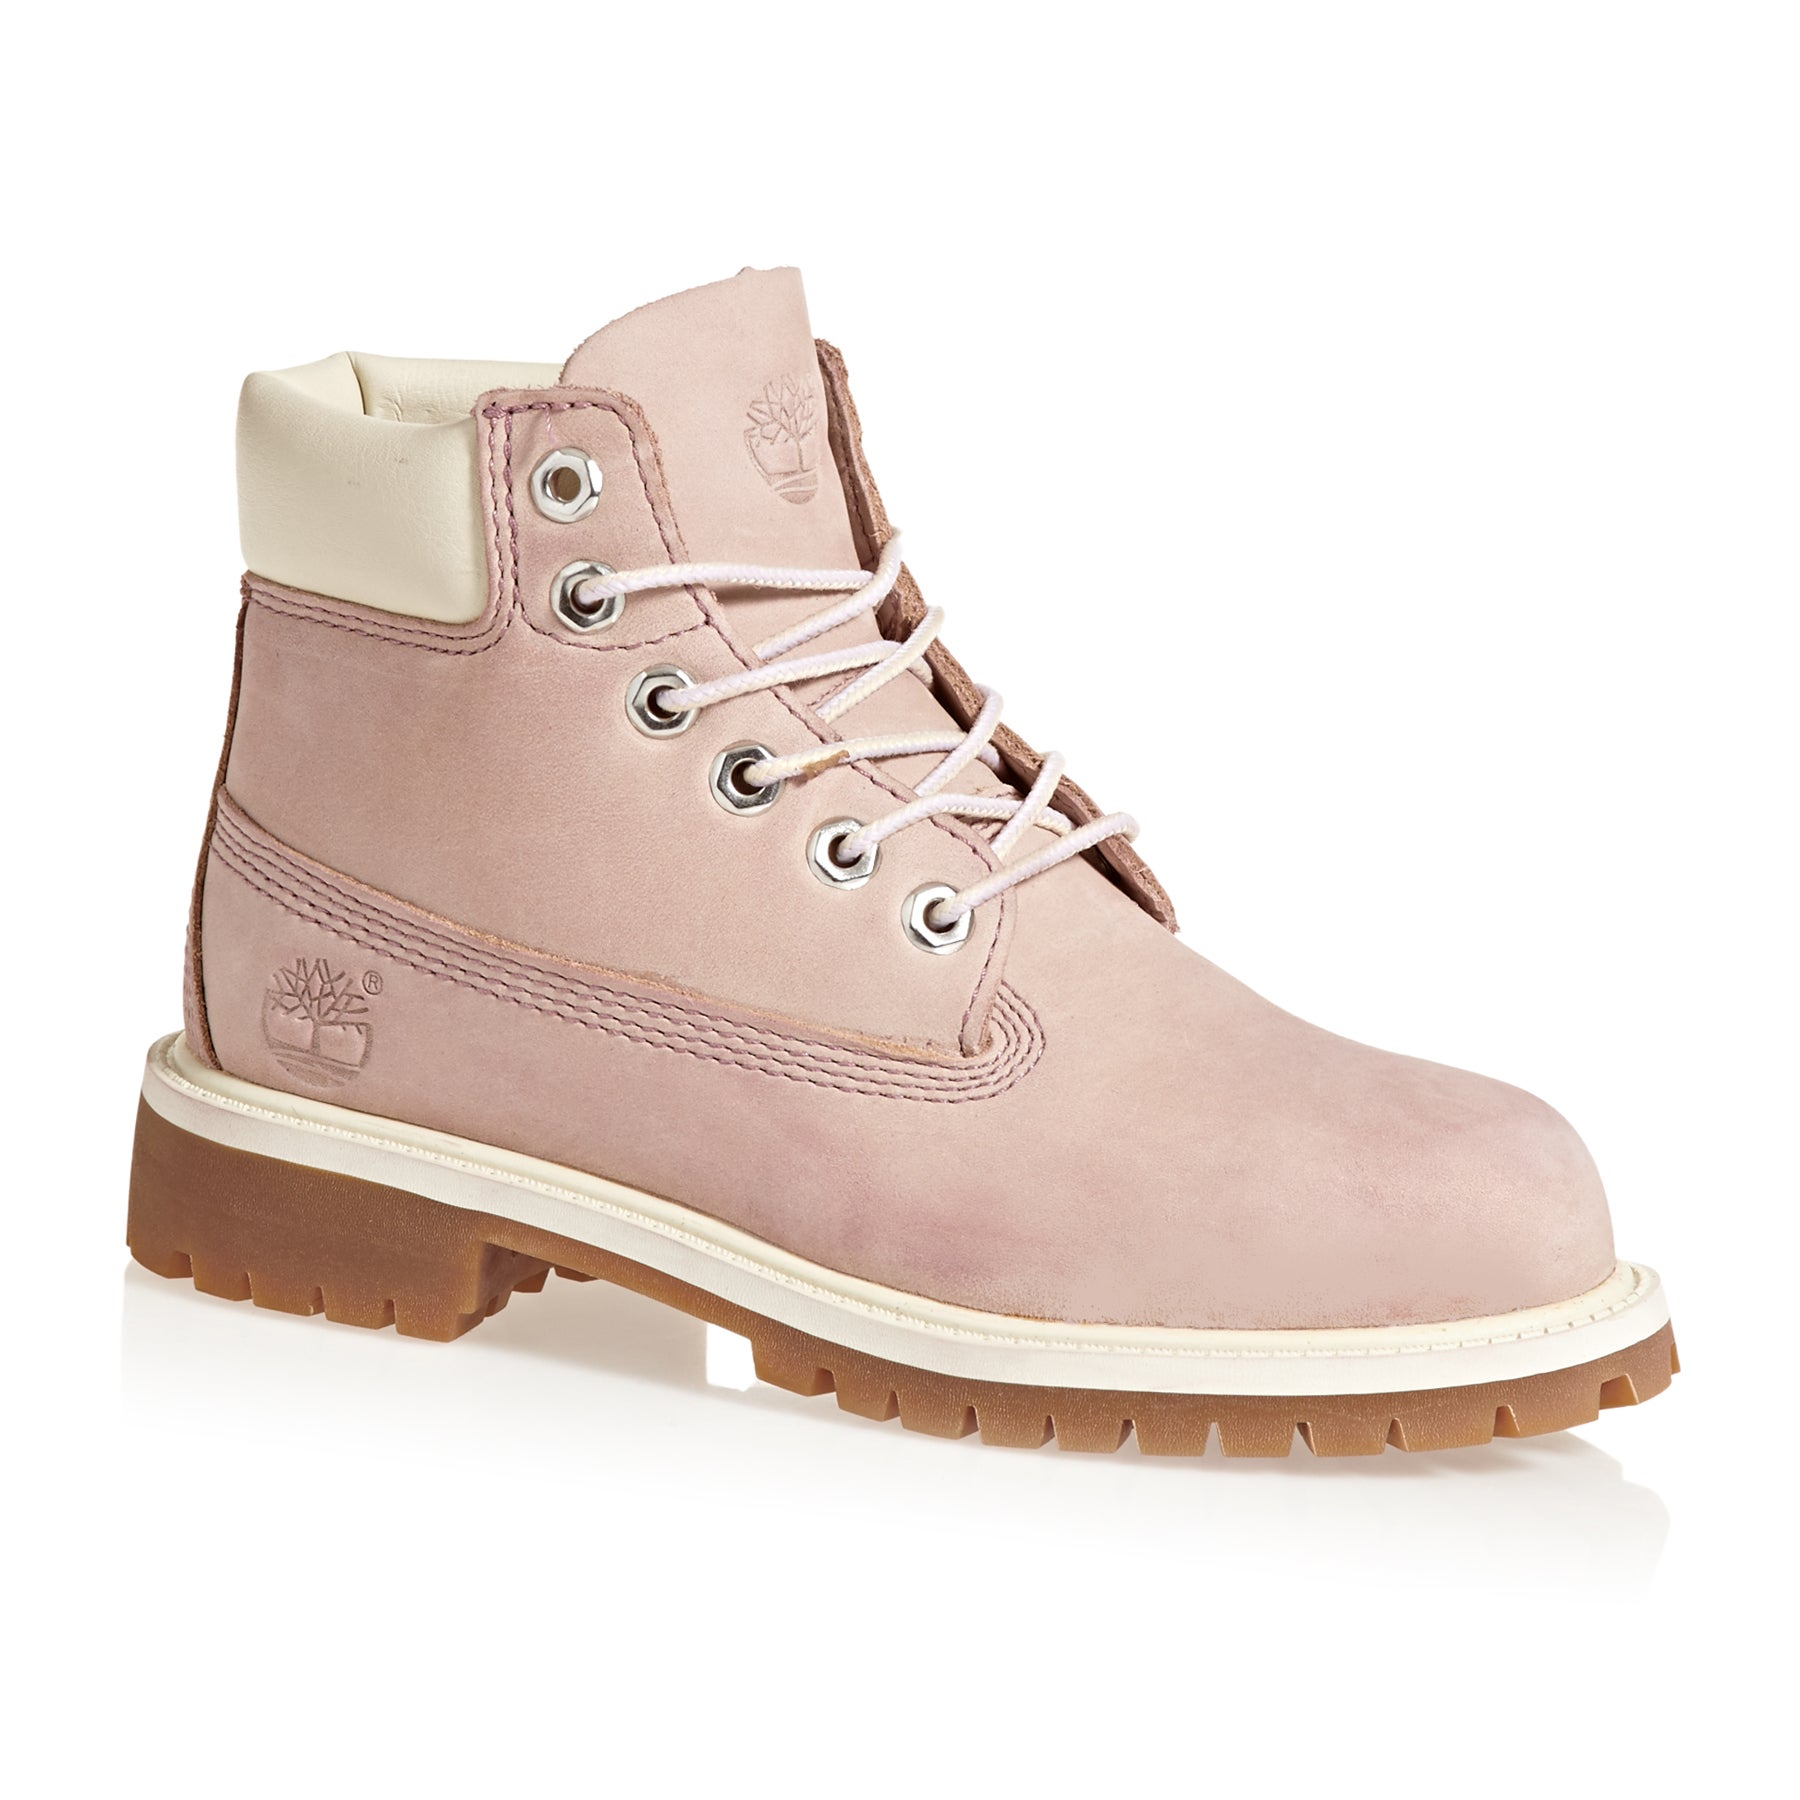 3288b170104c Timberland 6 In Premium Waterproof Girls Boots available from Surfdome